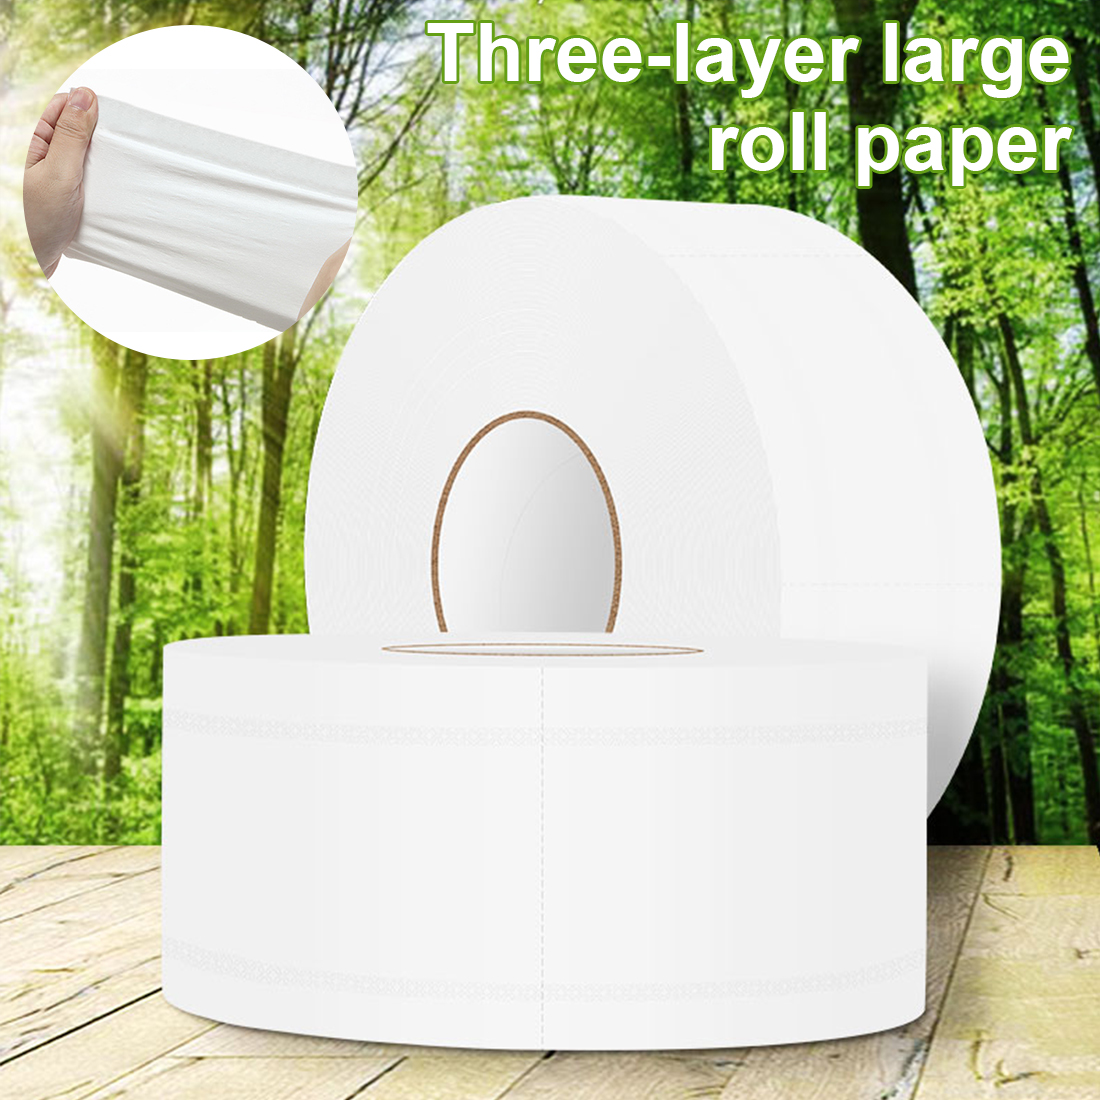 3pcs/bag 580g/Roll 900+sheets Jumbo Roll Toilet Paper Household Roll Home Bath Toilet Paper Soft Toilet Paper Towels